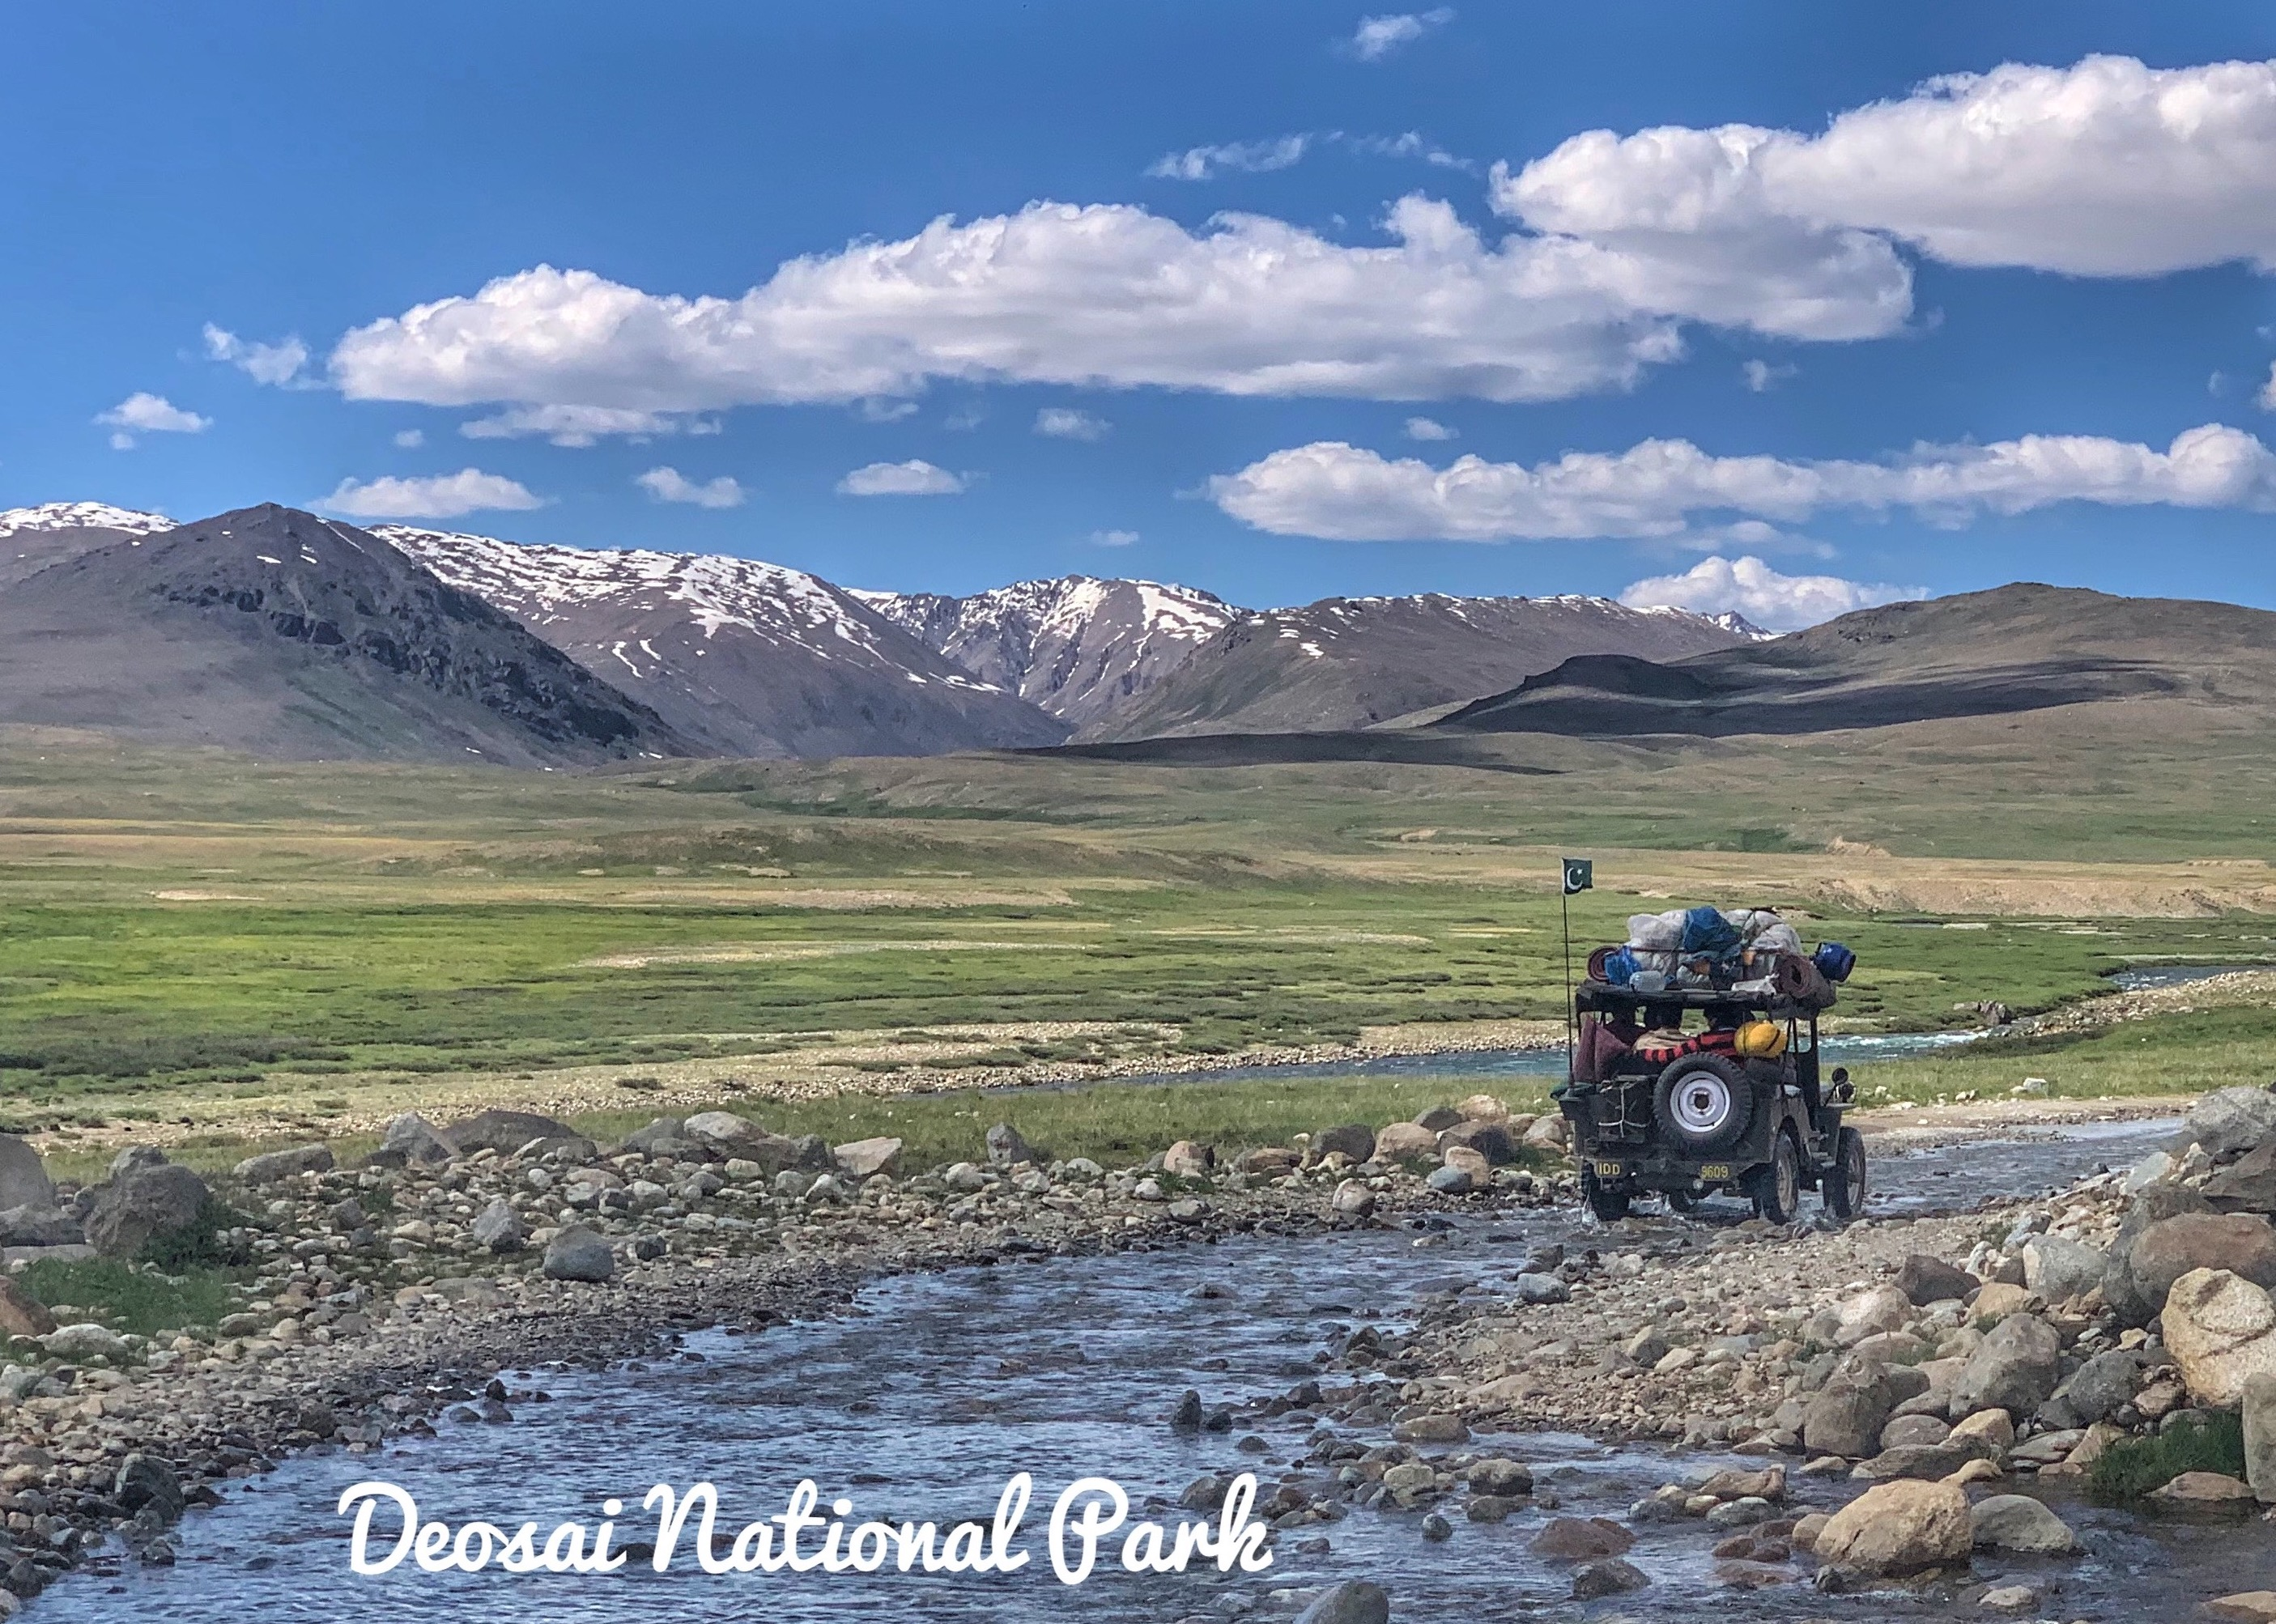 Part 3 of the Northern Areas of Pakistan:  Rama Valley to Skardu (via Deosai Plains)